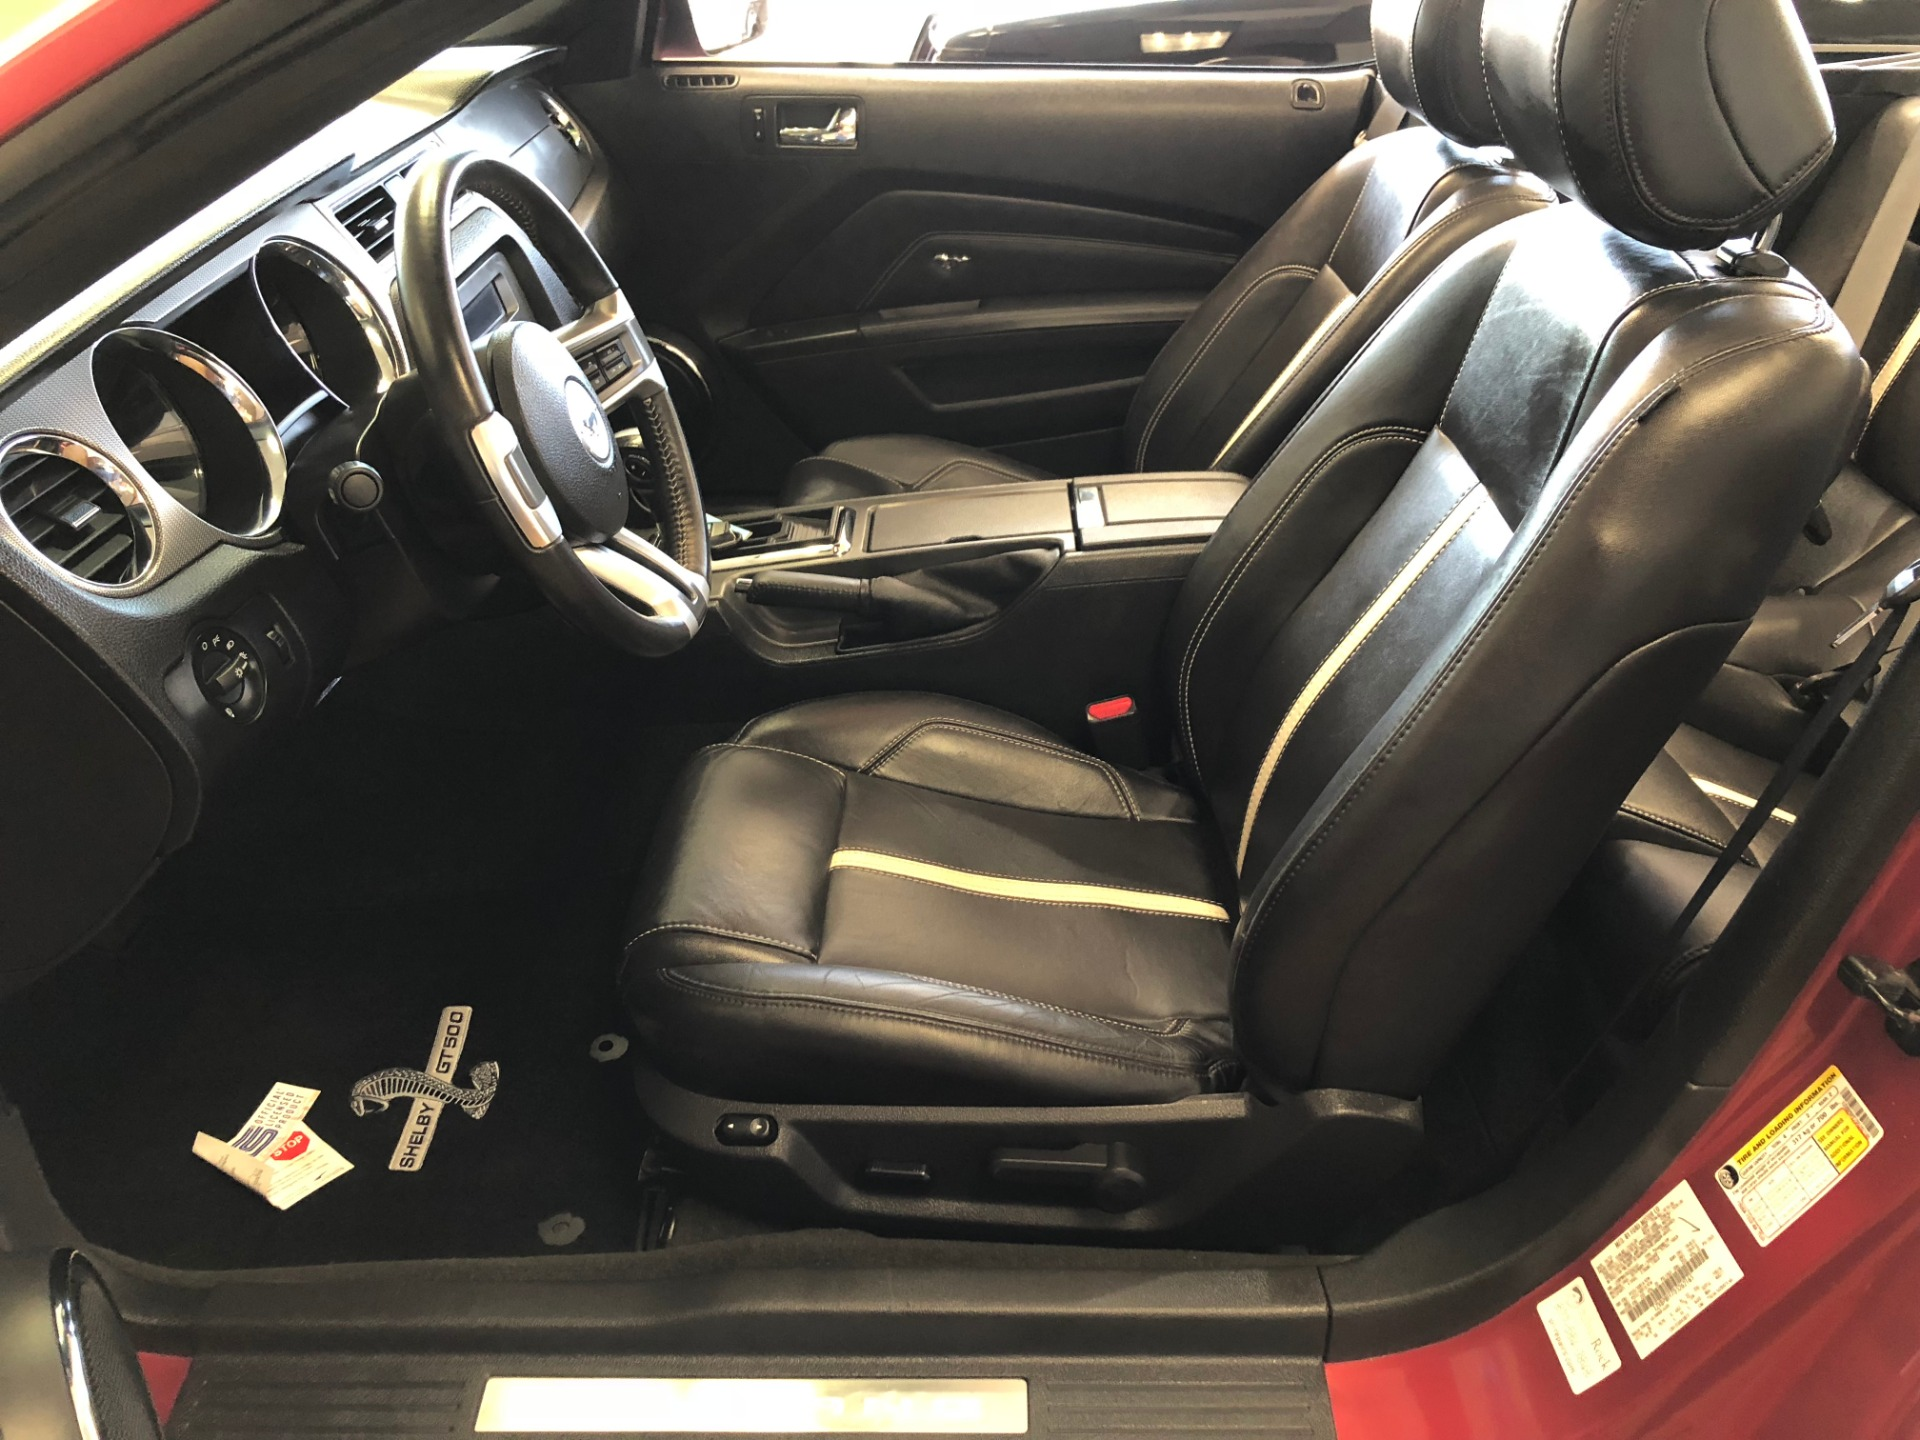 Used 2013 Ford Mustang Gt Gt For Sale 24 900 Executive Auto